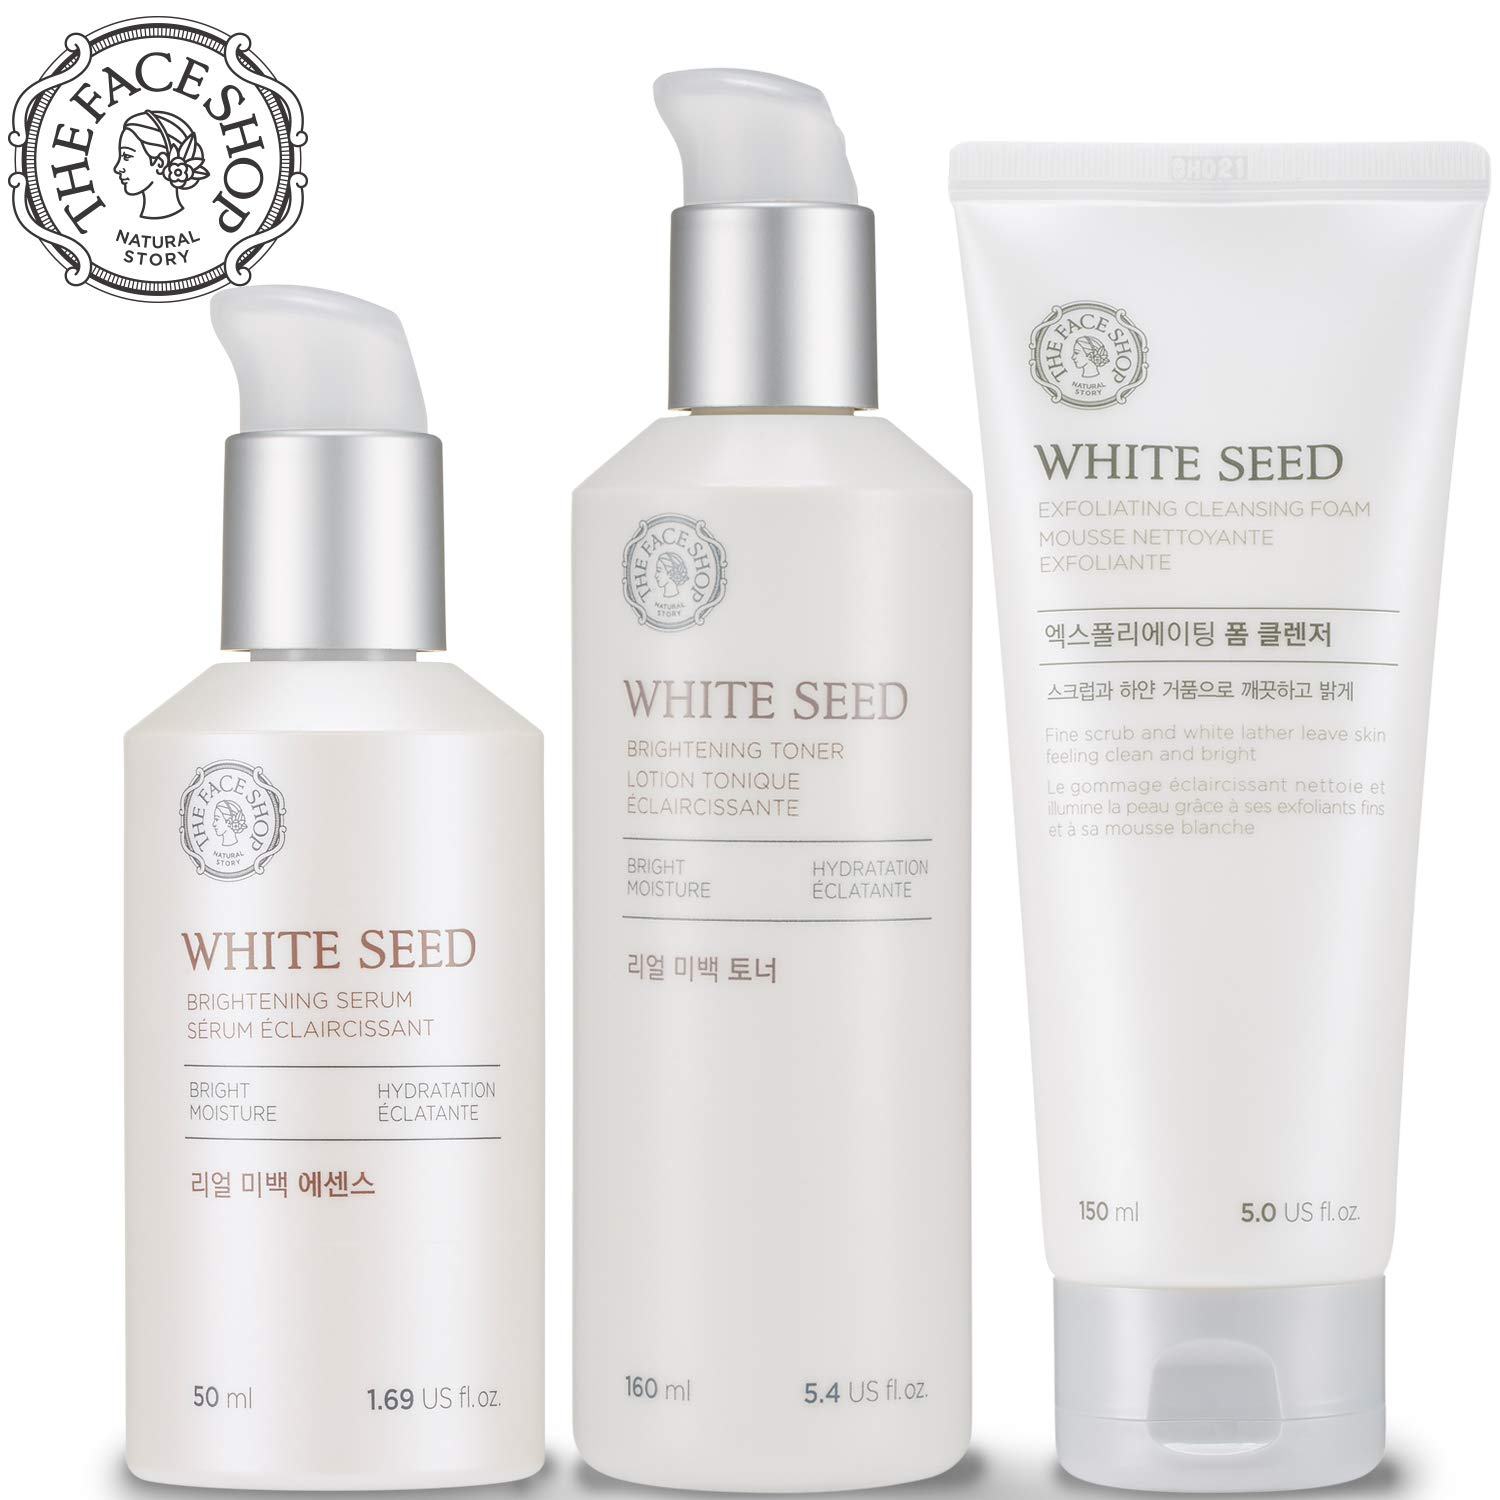 [THEFACESHOP] Korean Skin Care Set - Toner, Serum, and Cleansing Foam Brightening White Seed Gift Set by THEFACESHOP